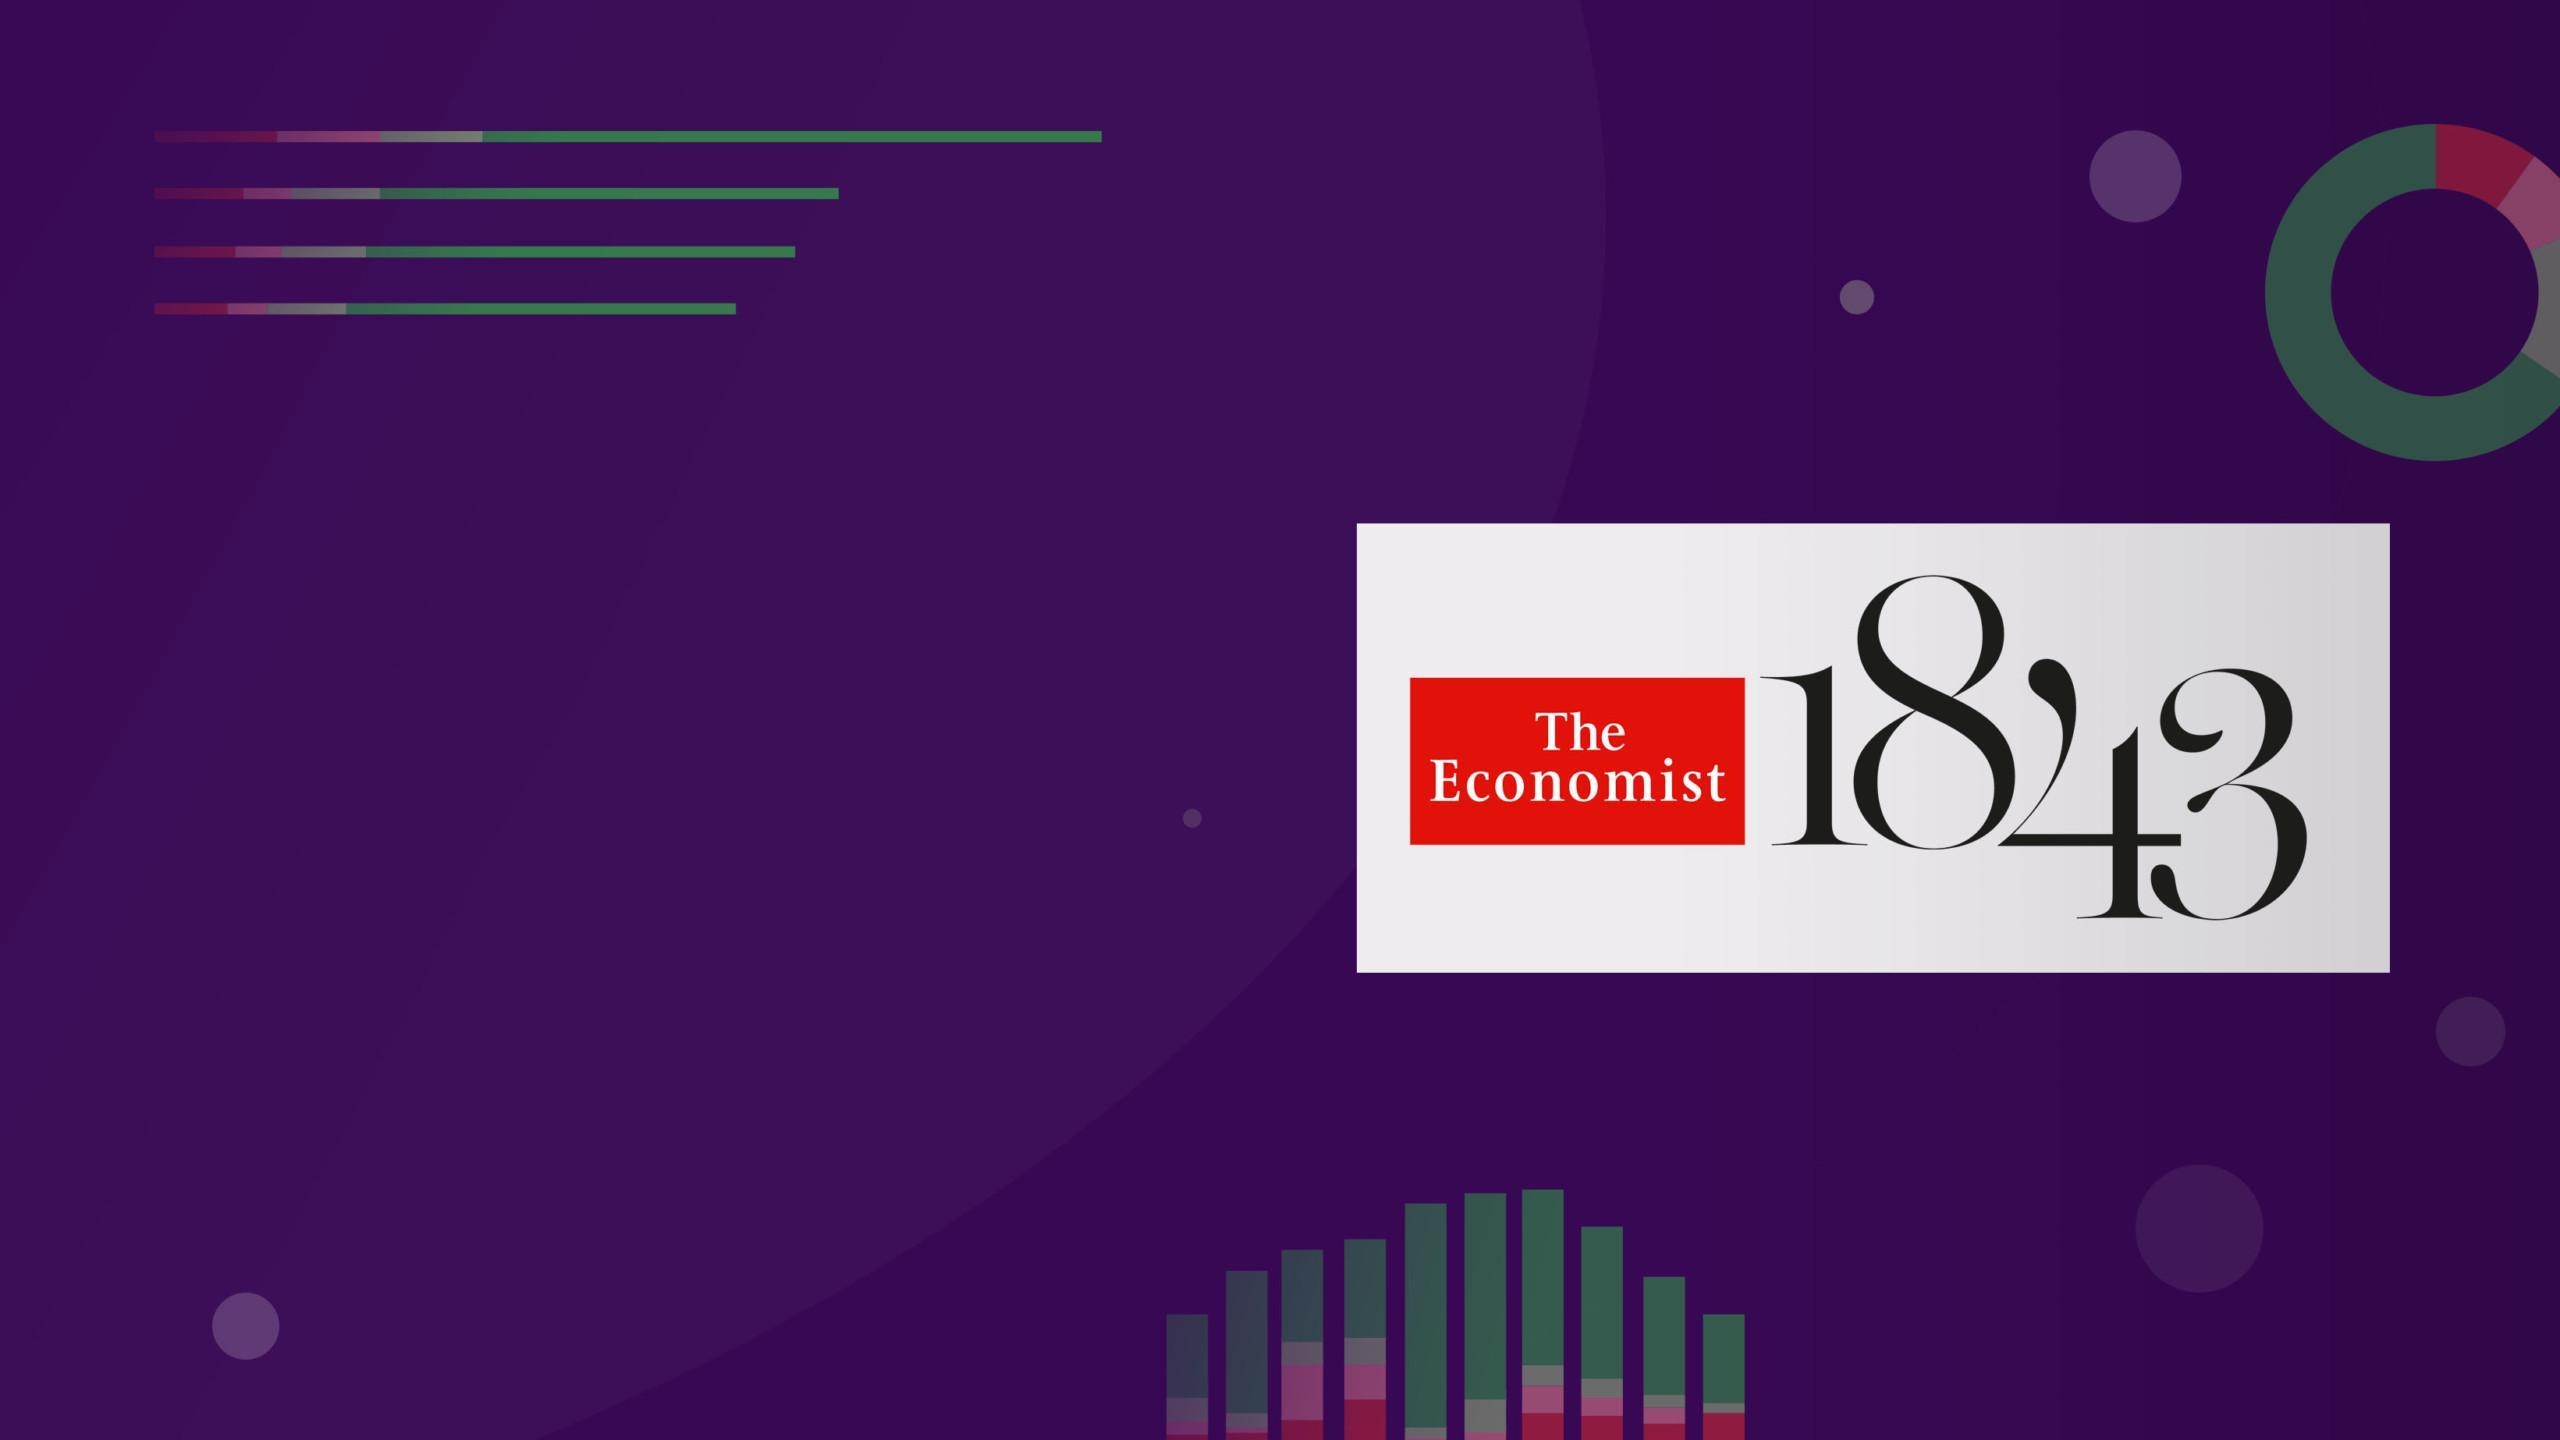 The Economist 1843 main page banner